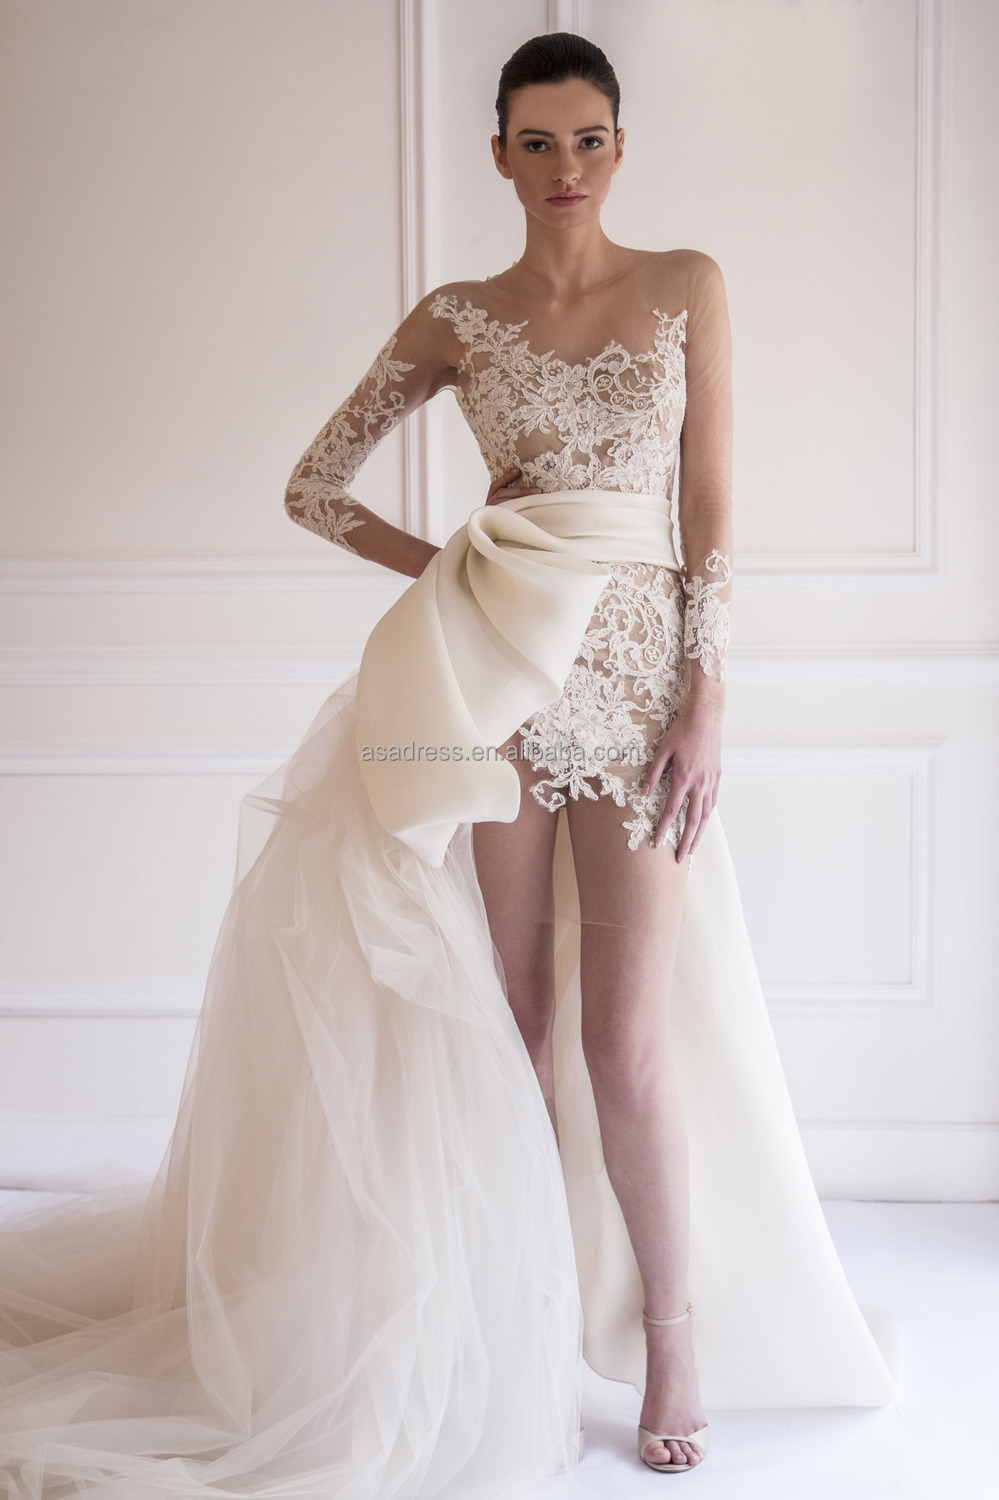 Latest Y Long Sleeve Bridal Gown Short Wedding Dress With Train Sheer Lace Dresses